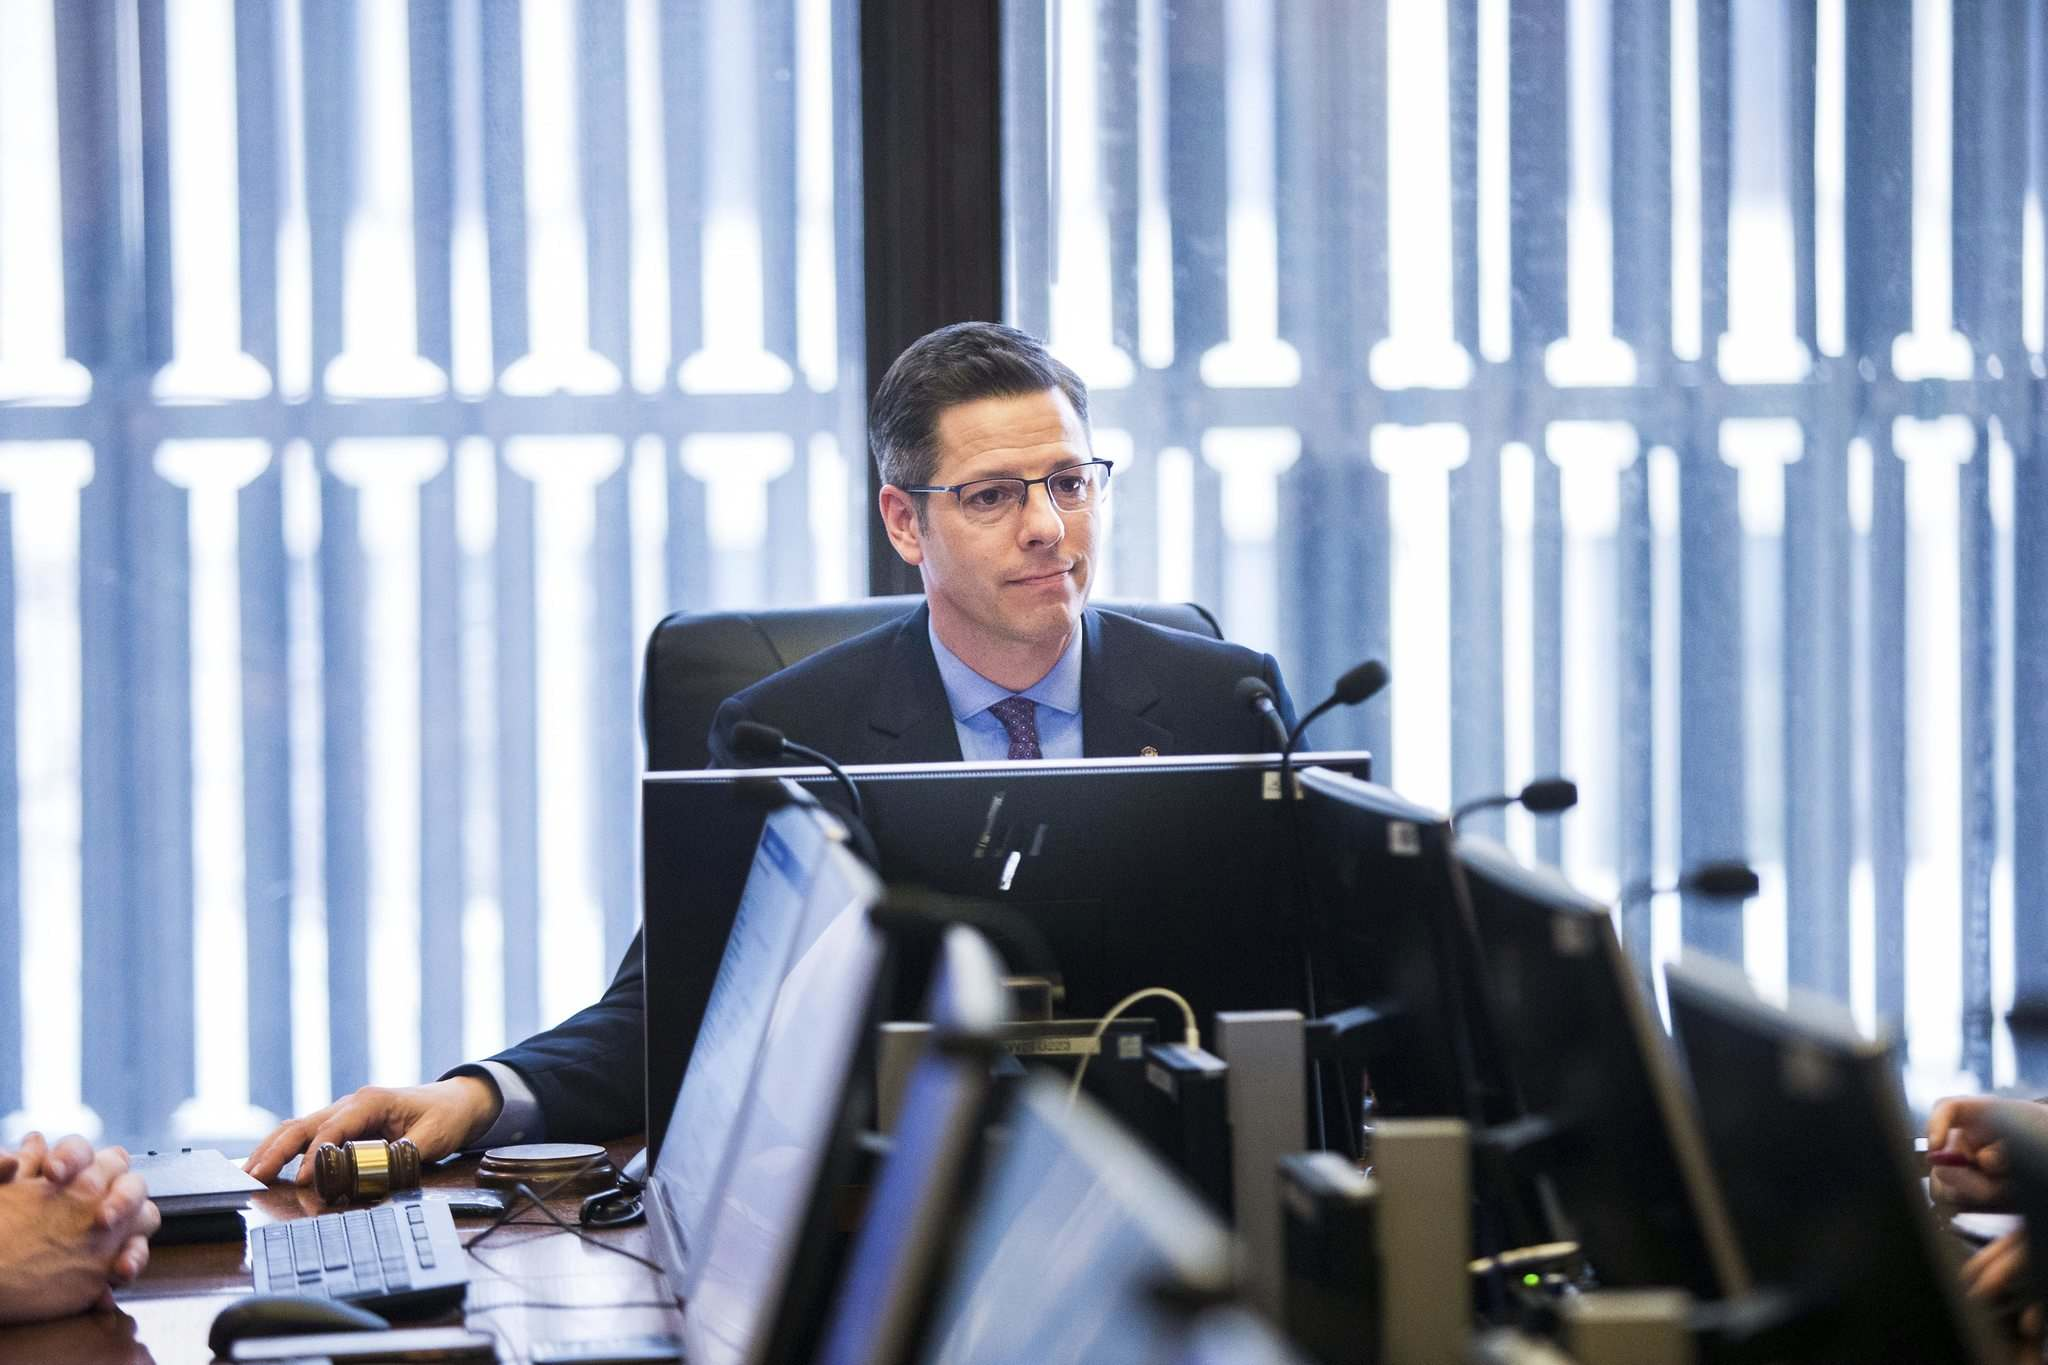 MIKAELA MACKENZIE / WINNIPEG FREE PRESS files</p><p>Mayor Brian Bowman presides over the March 6 meeting at which the city's 2020 budget was tabled. The final council vote on the budget is scheduled for Friday.</p>